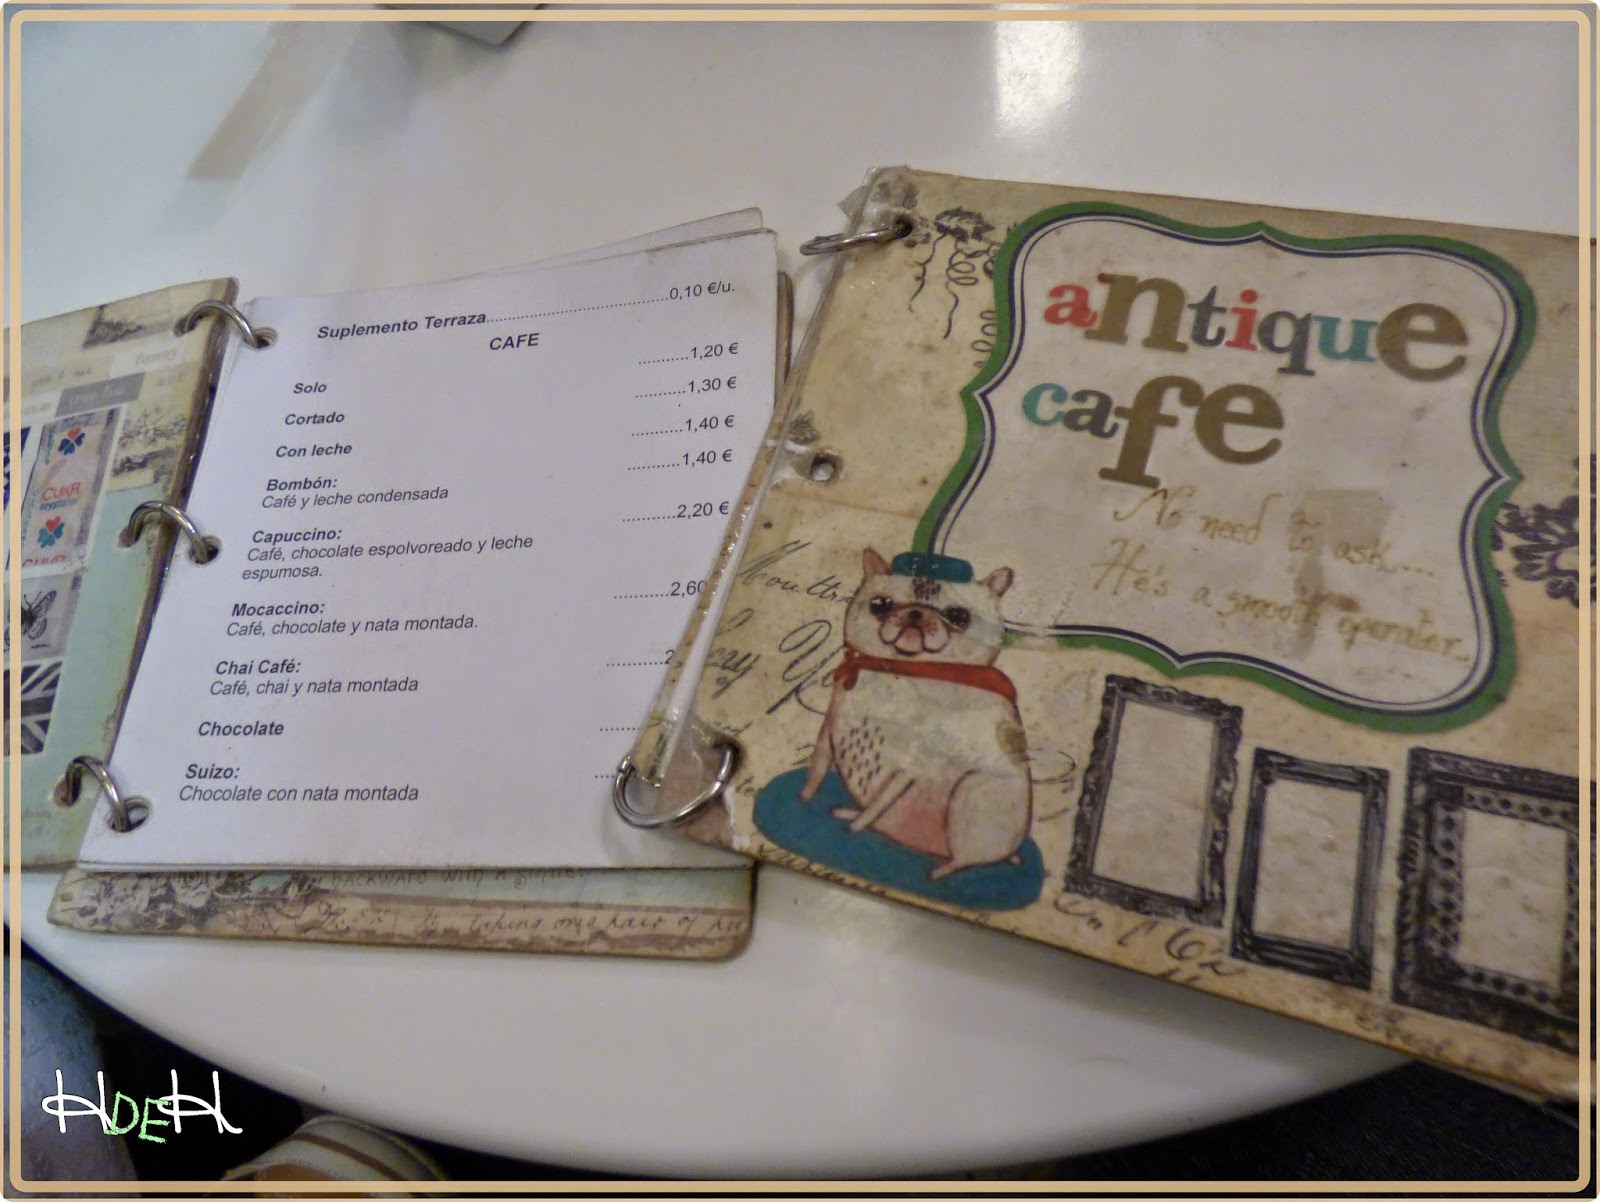 antique cafe valencia